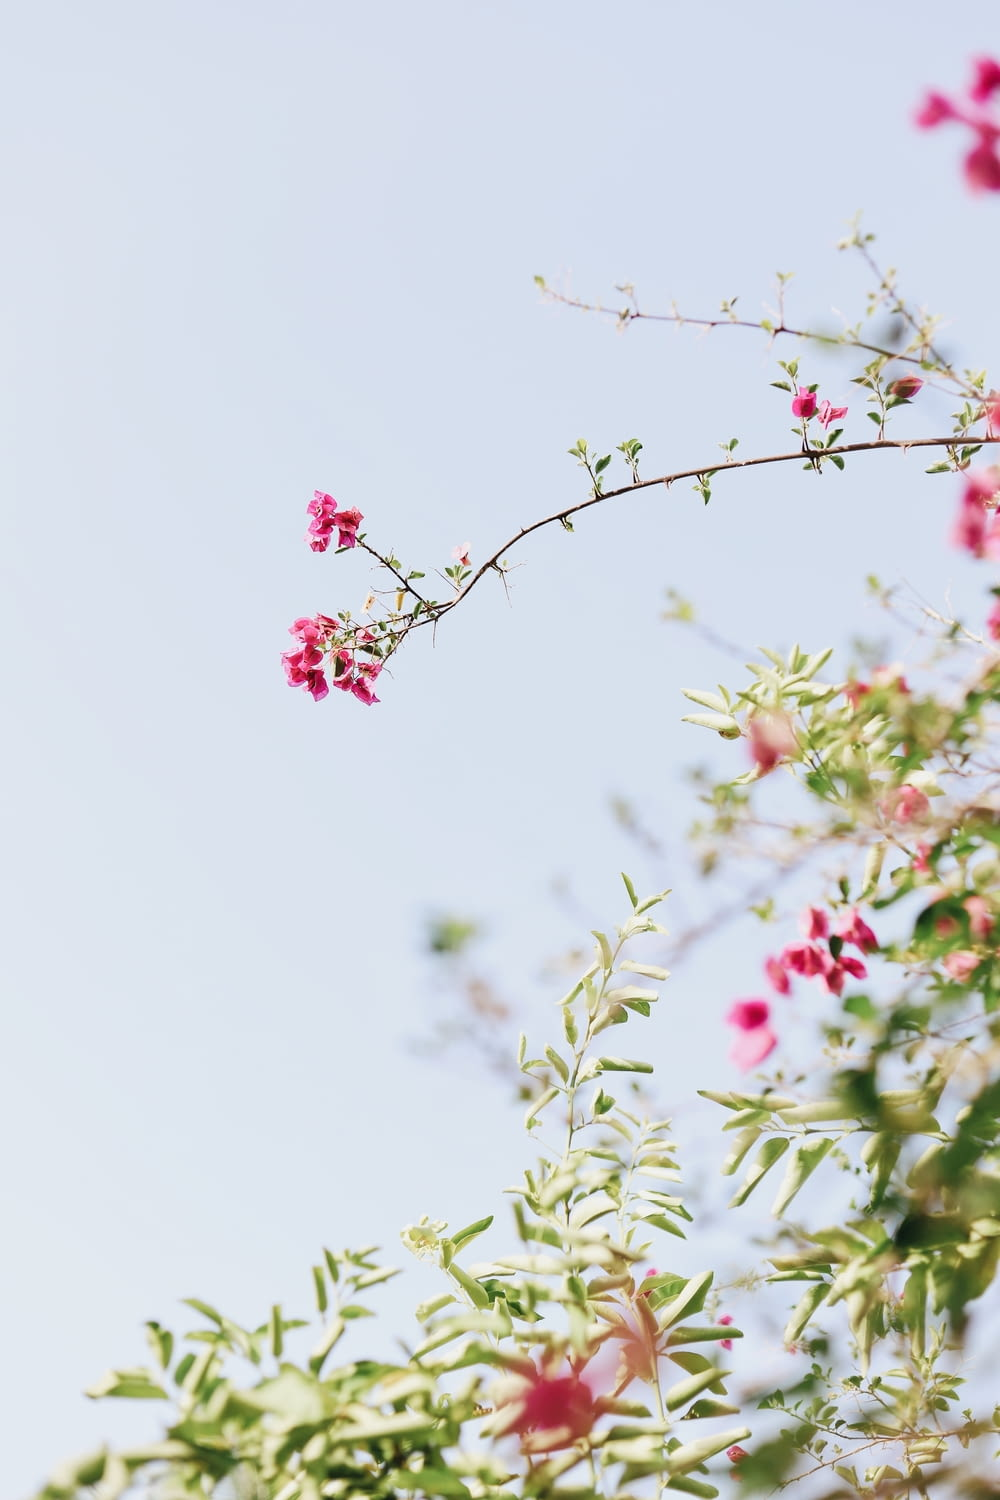 bokeh photography of green-leafed plant with pink flowers